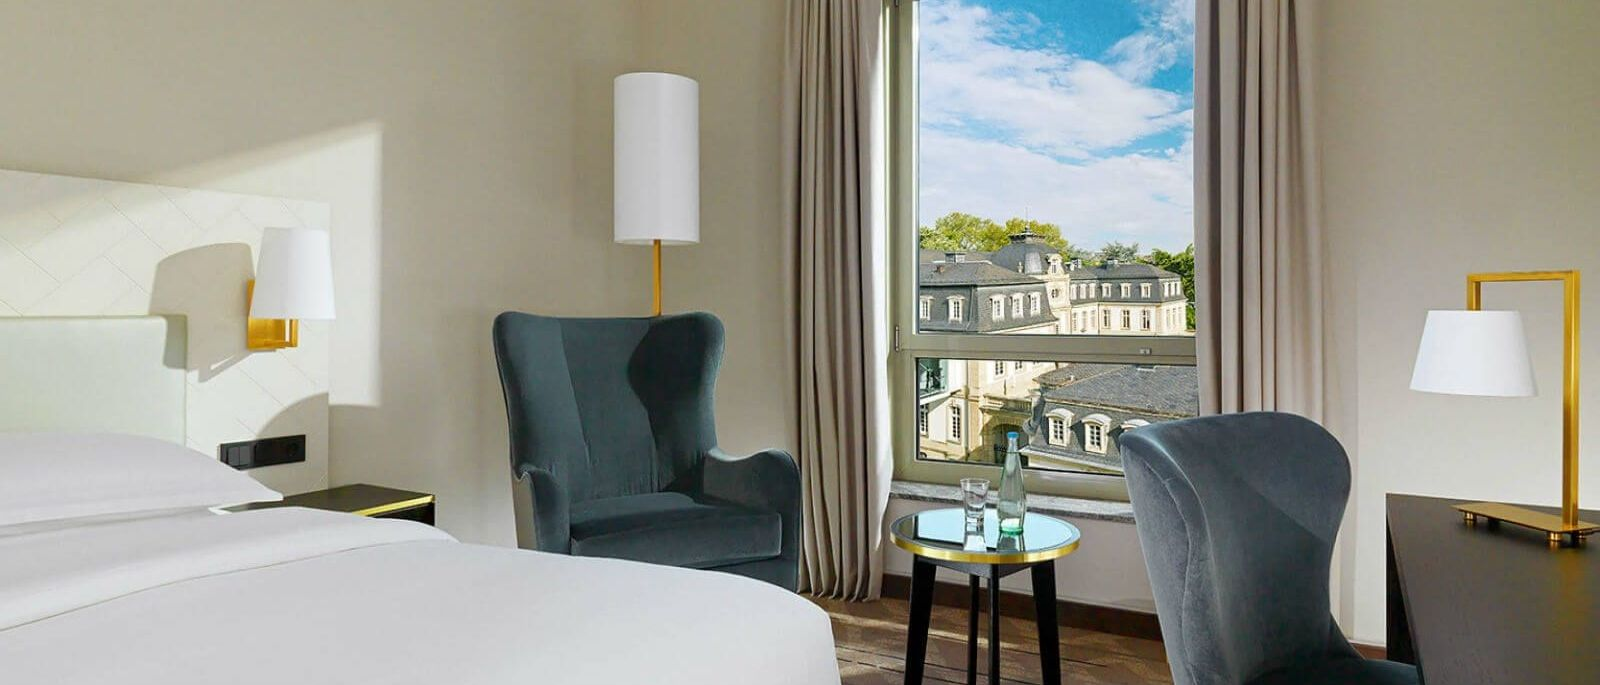 Comfort and Relaxation at Sheraton Offenbach Hotel